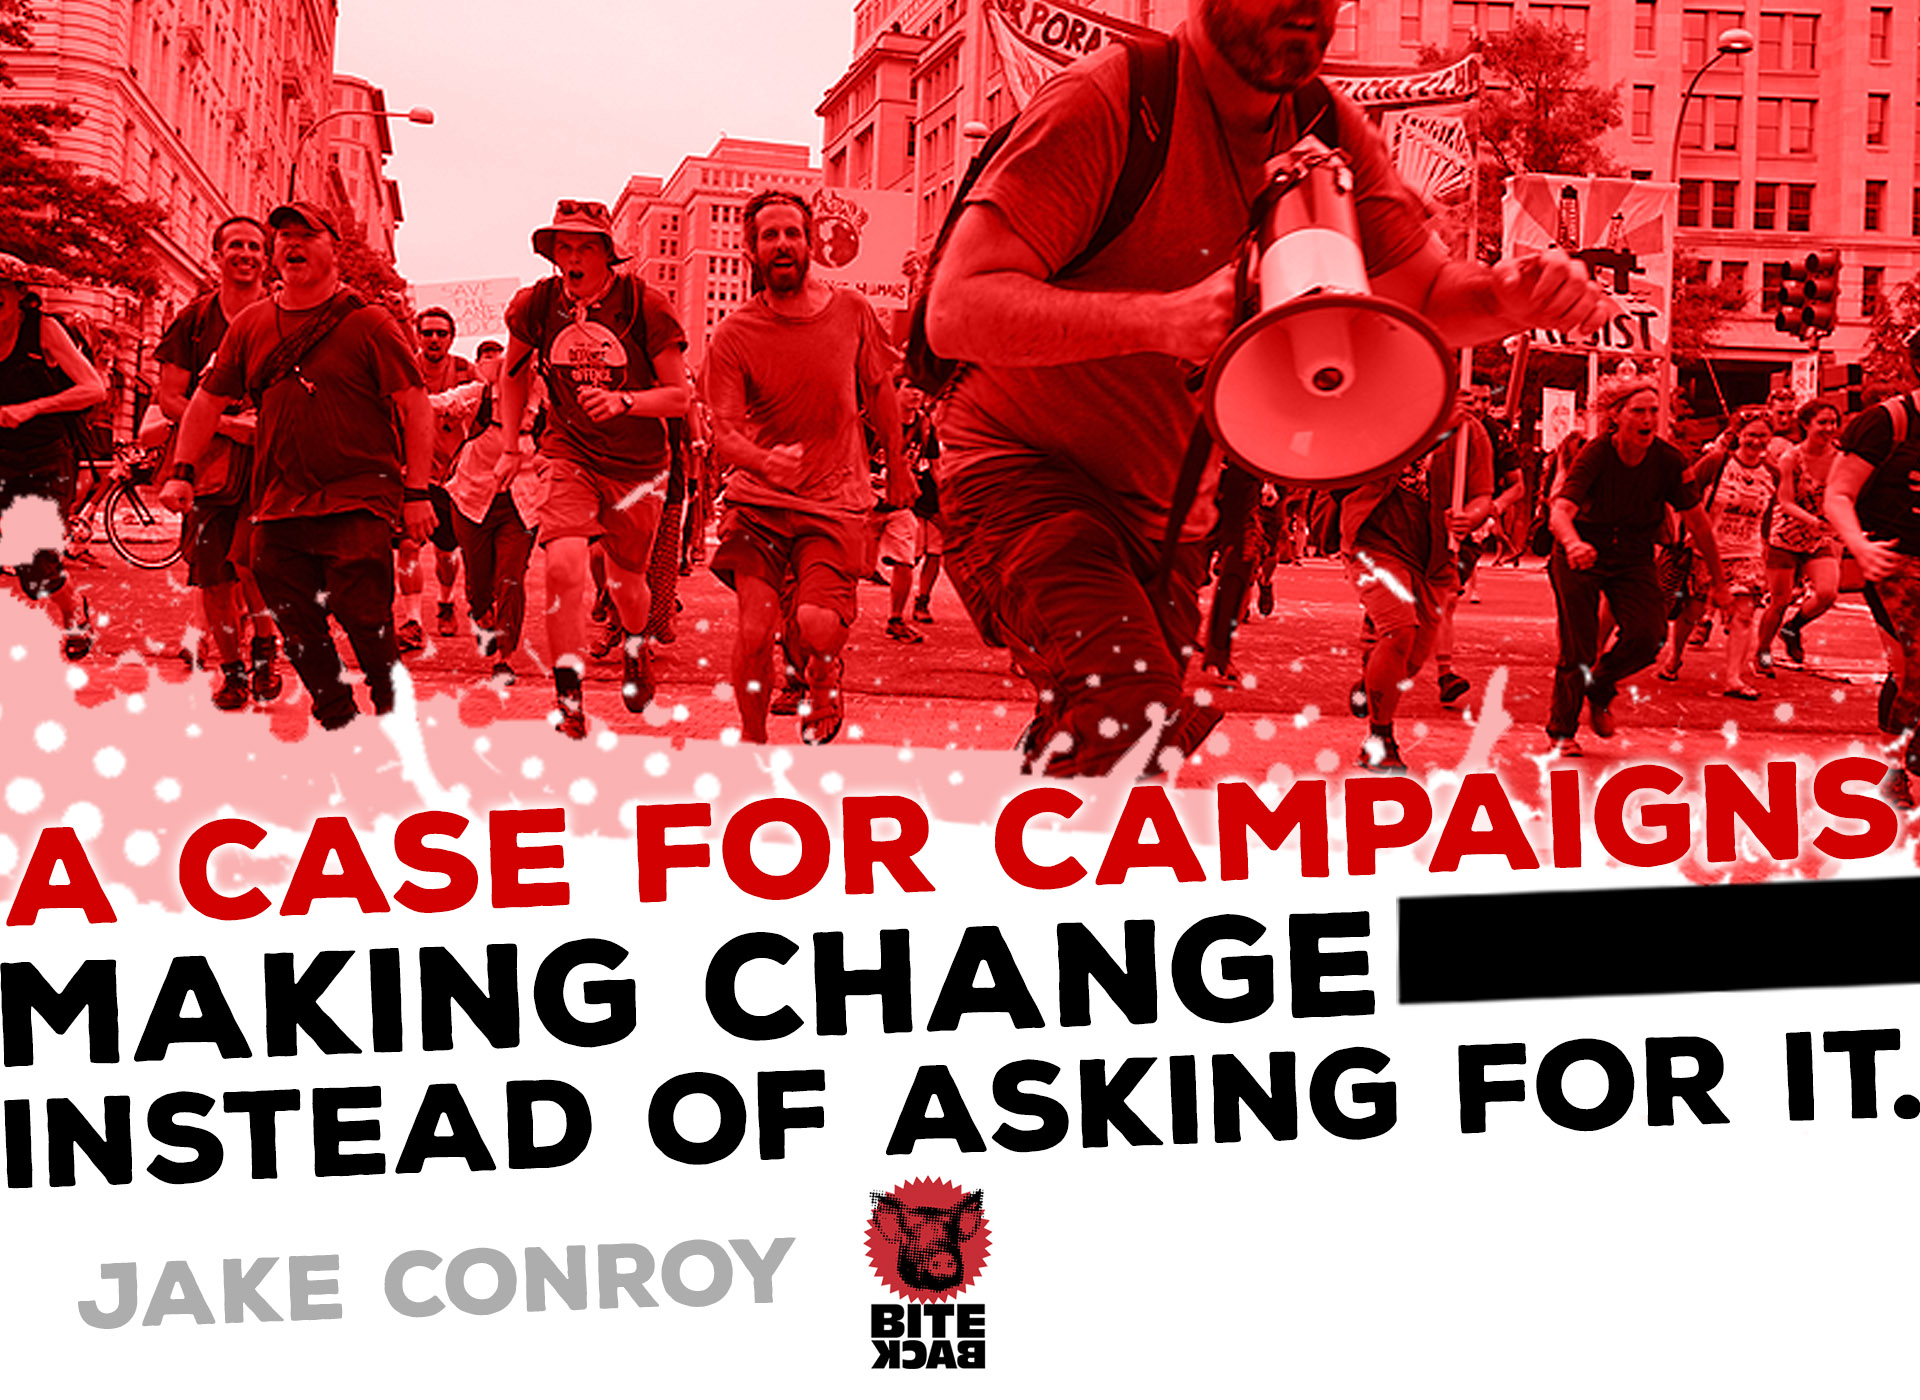 Jake Conroy - A Case for Campaigns, making change instead of asking for it